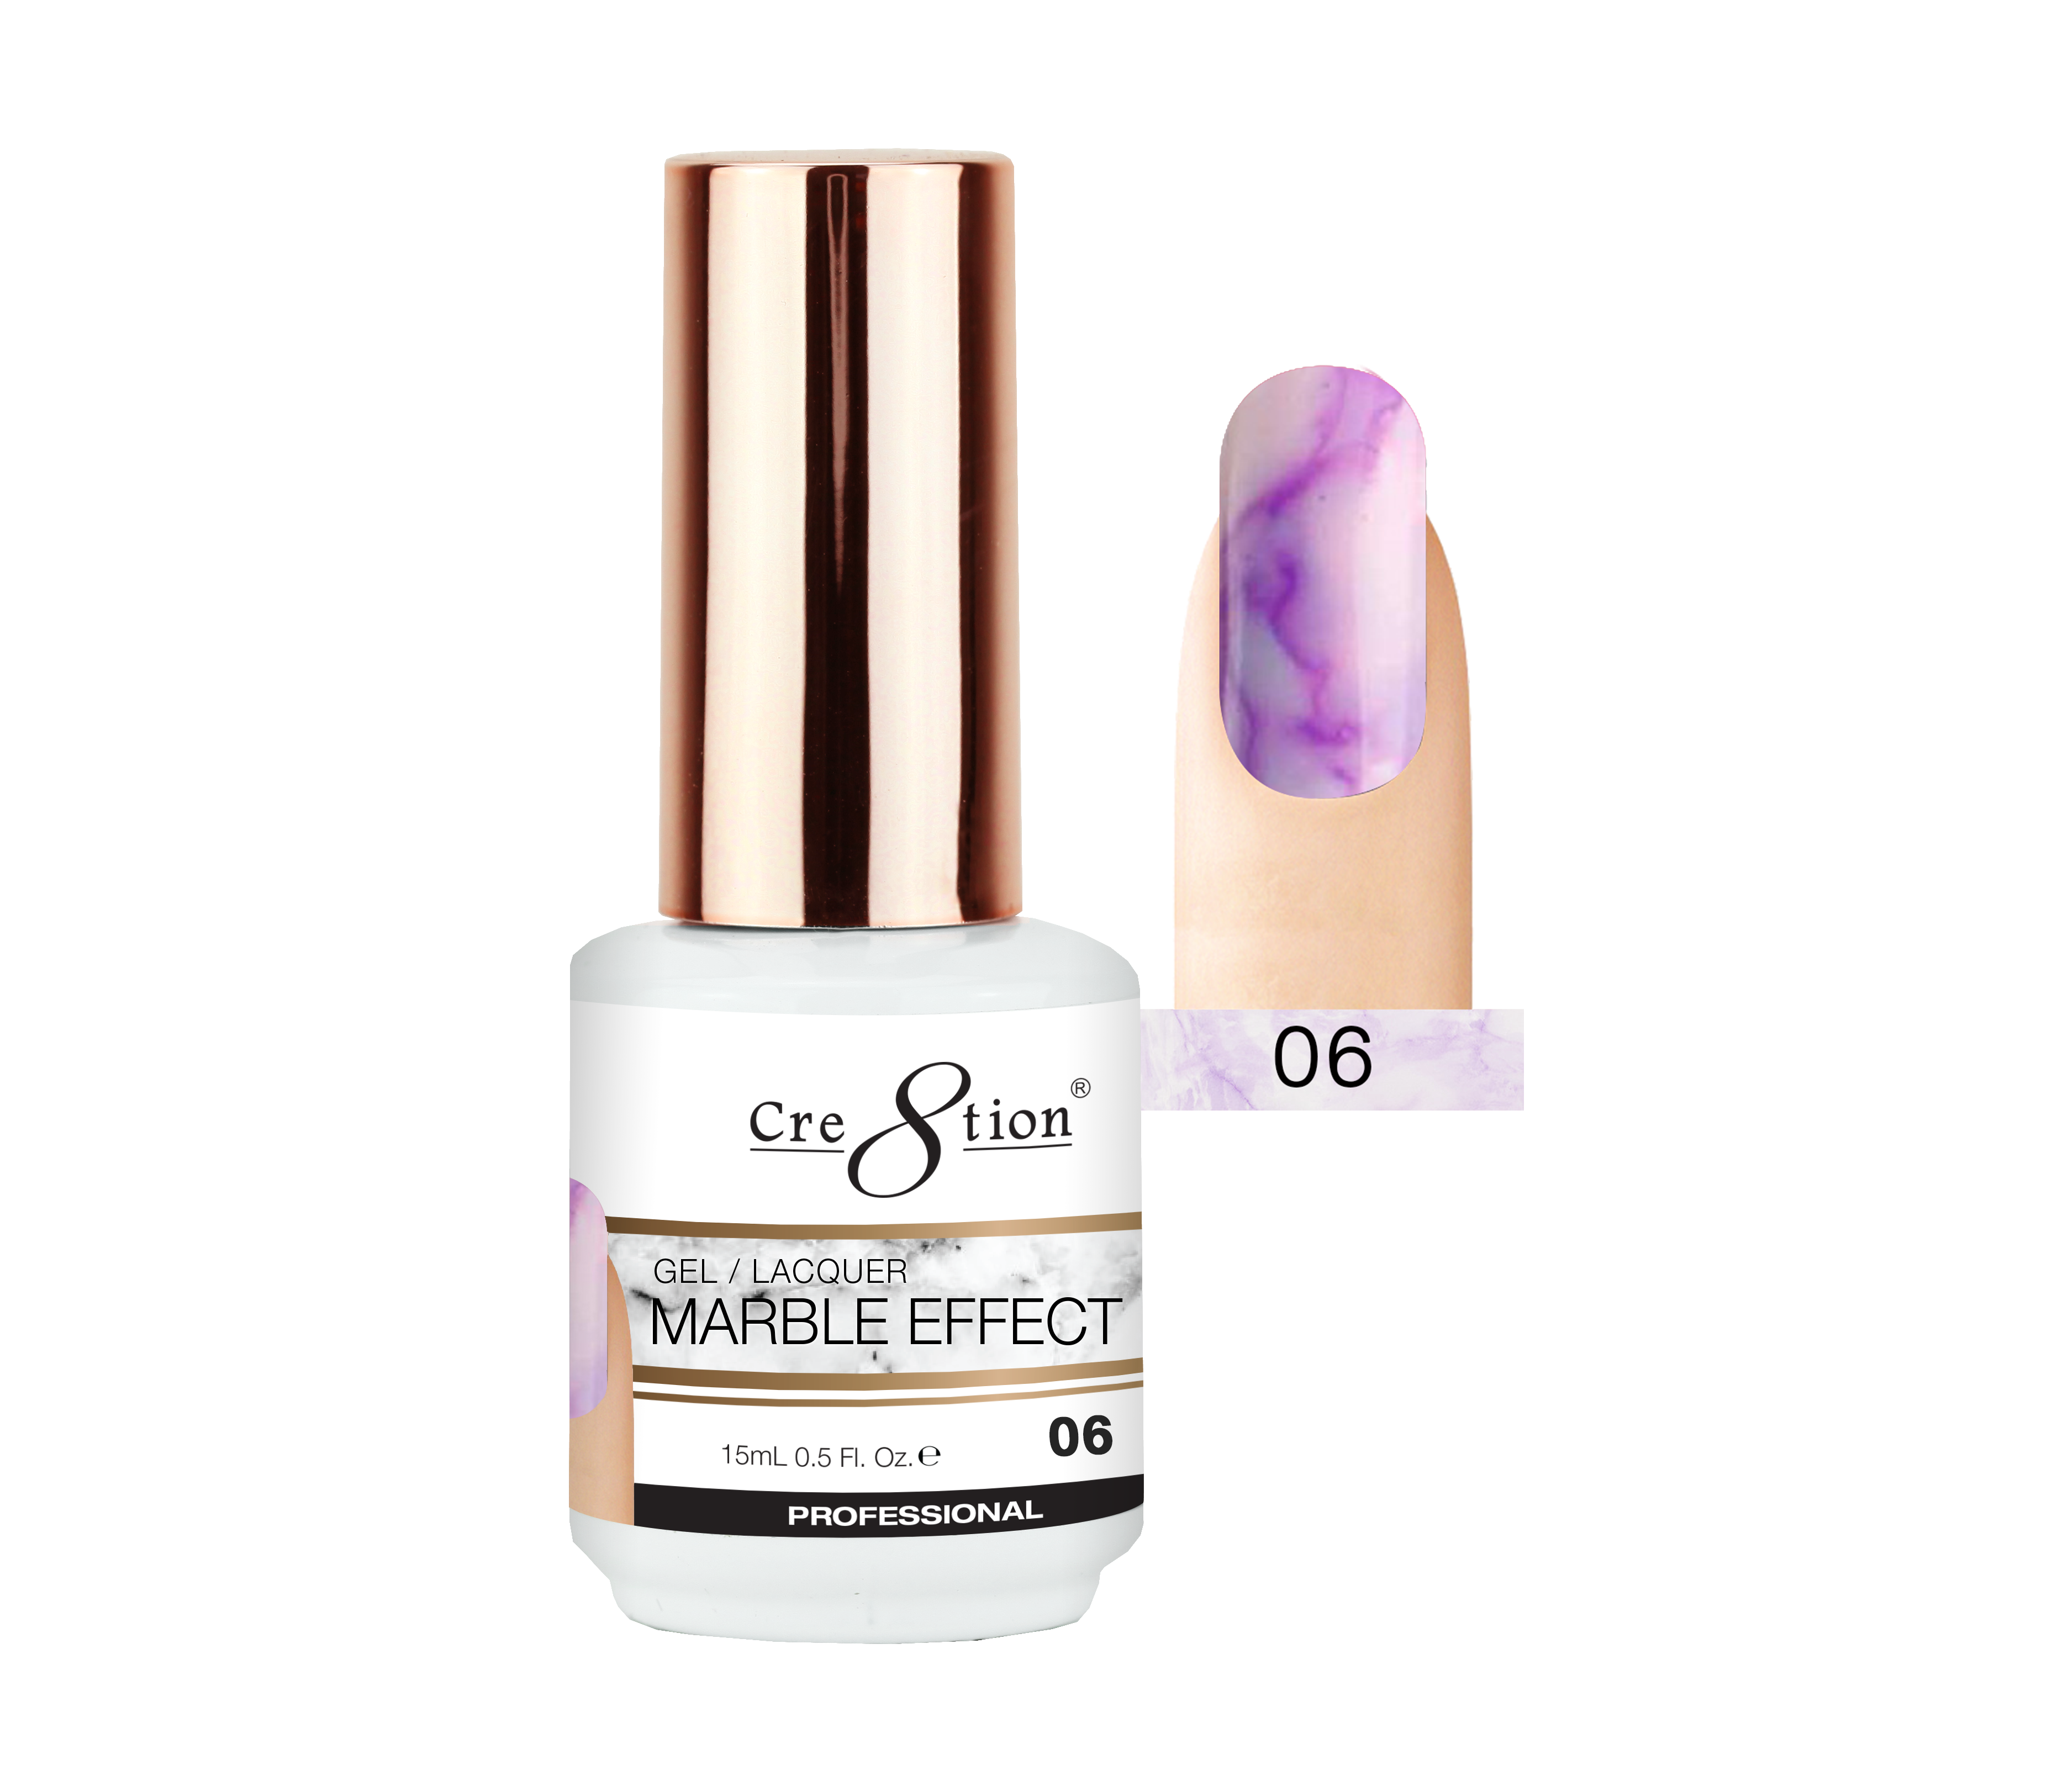 Cre8tion - Marble Effect Soak Off Gel/Lacquer .5oz